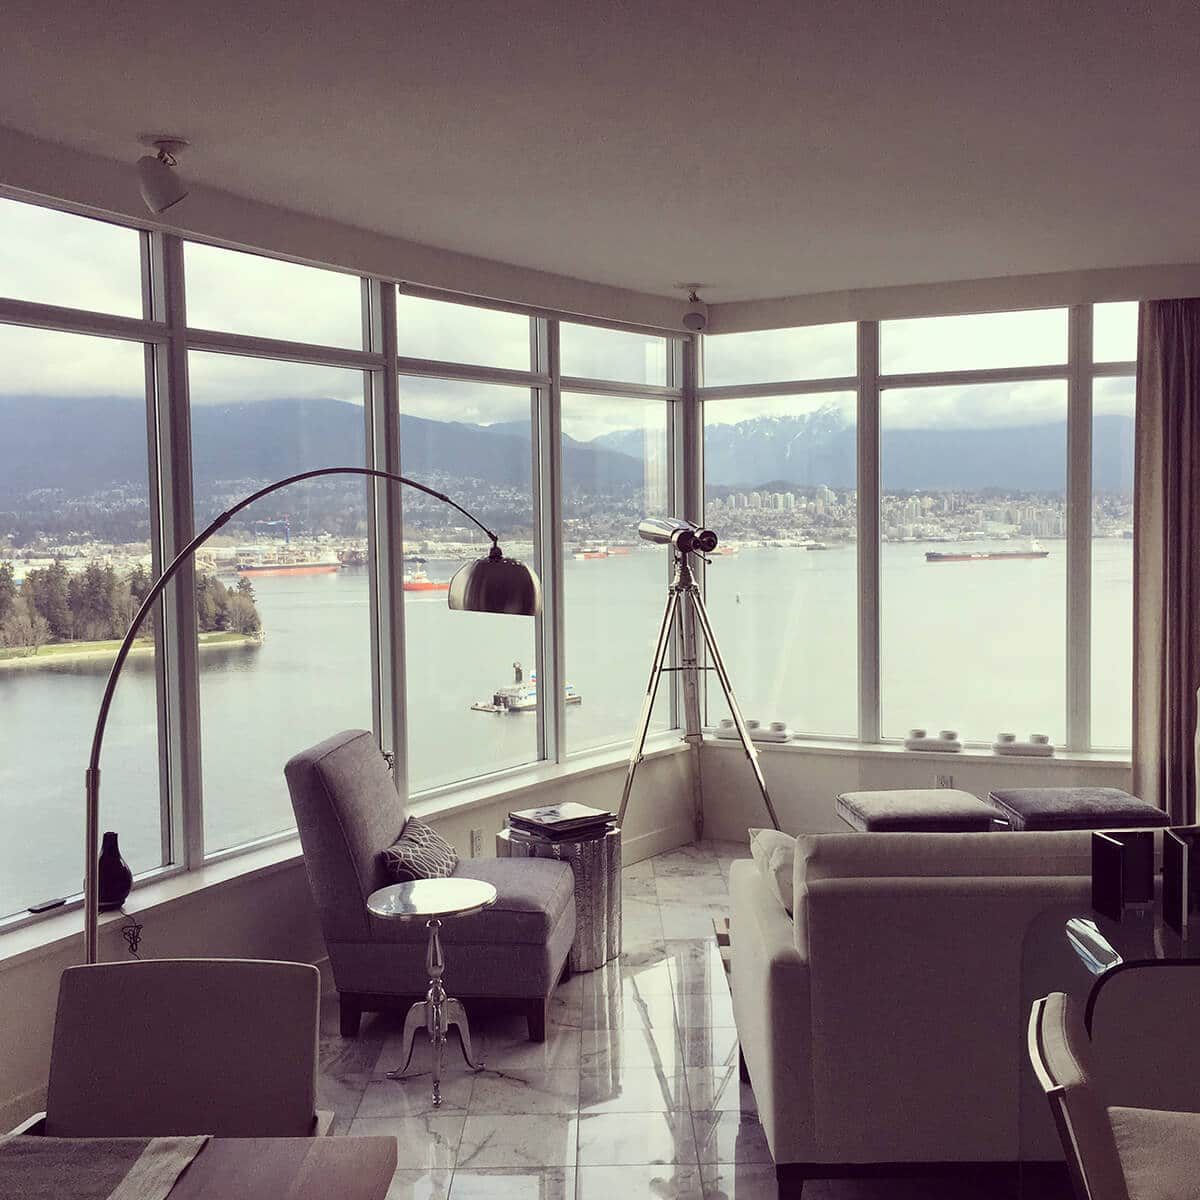 Full-height glass window with views from a condo